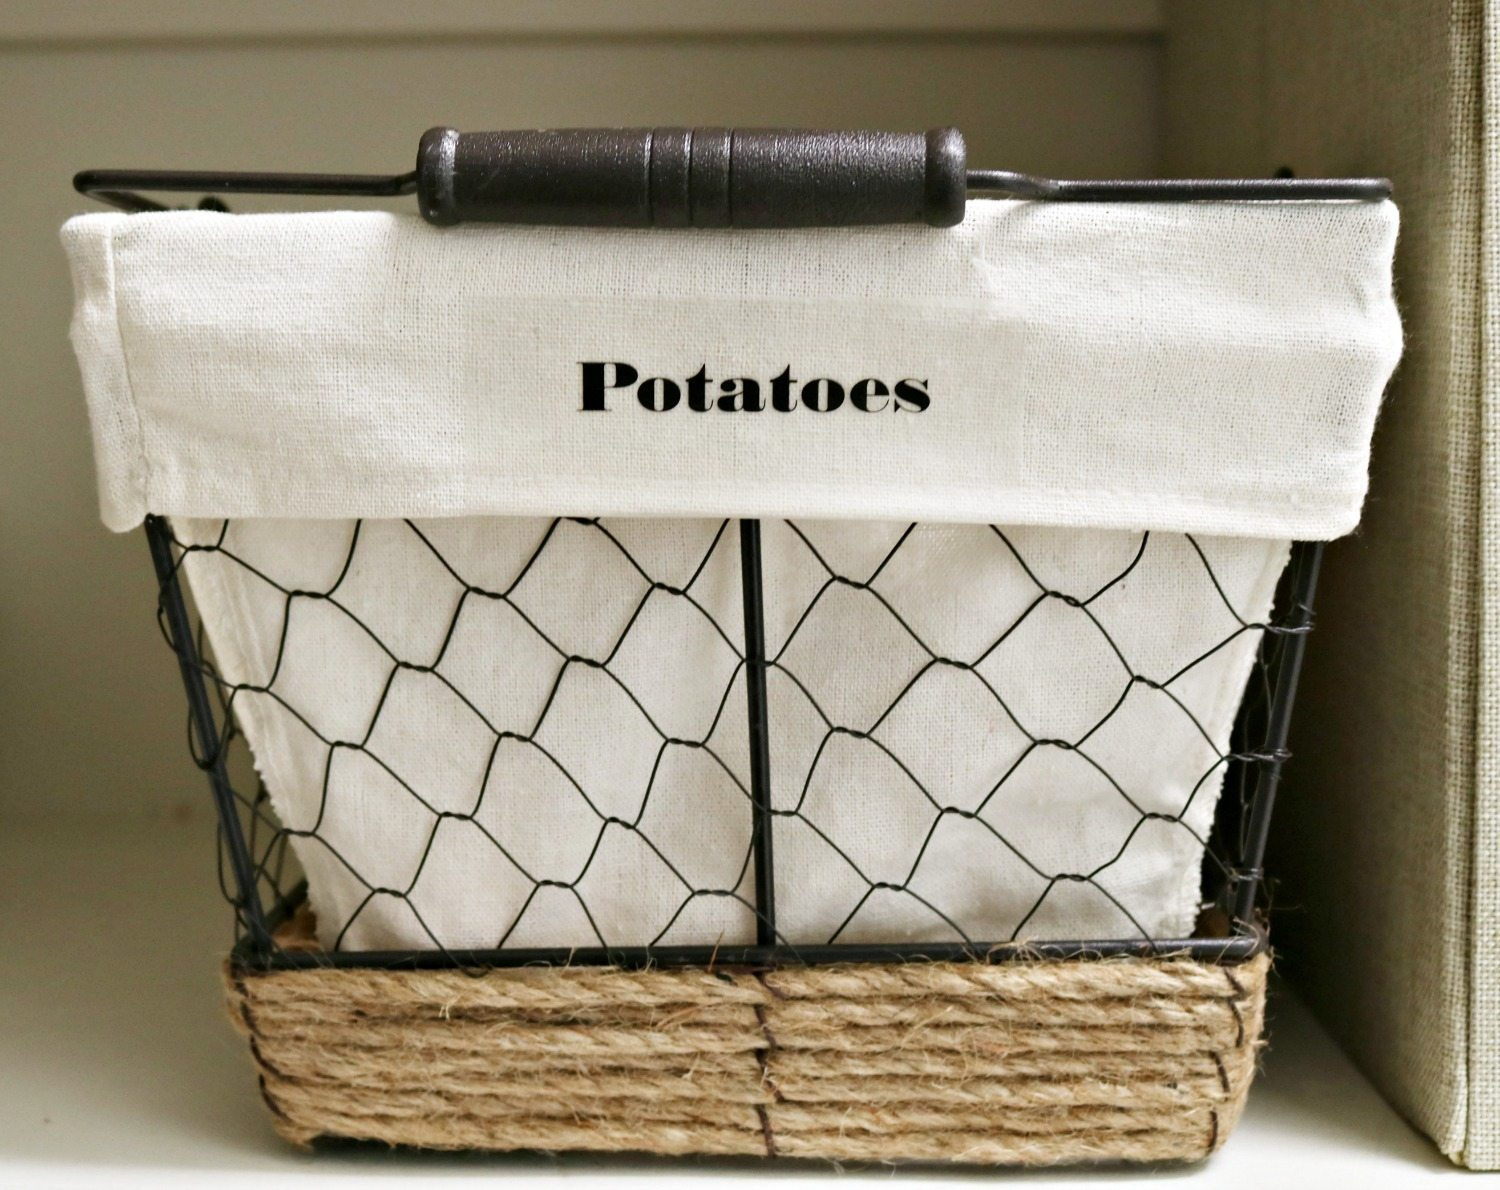 Perfect farmhouse baskets for veggies in the pantry